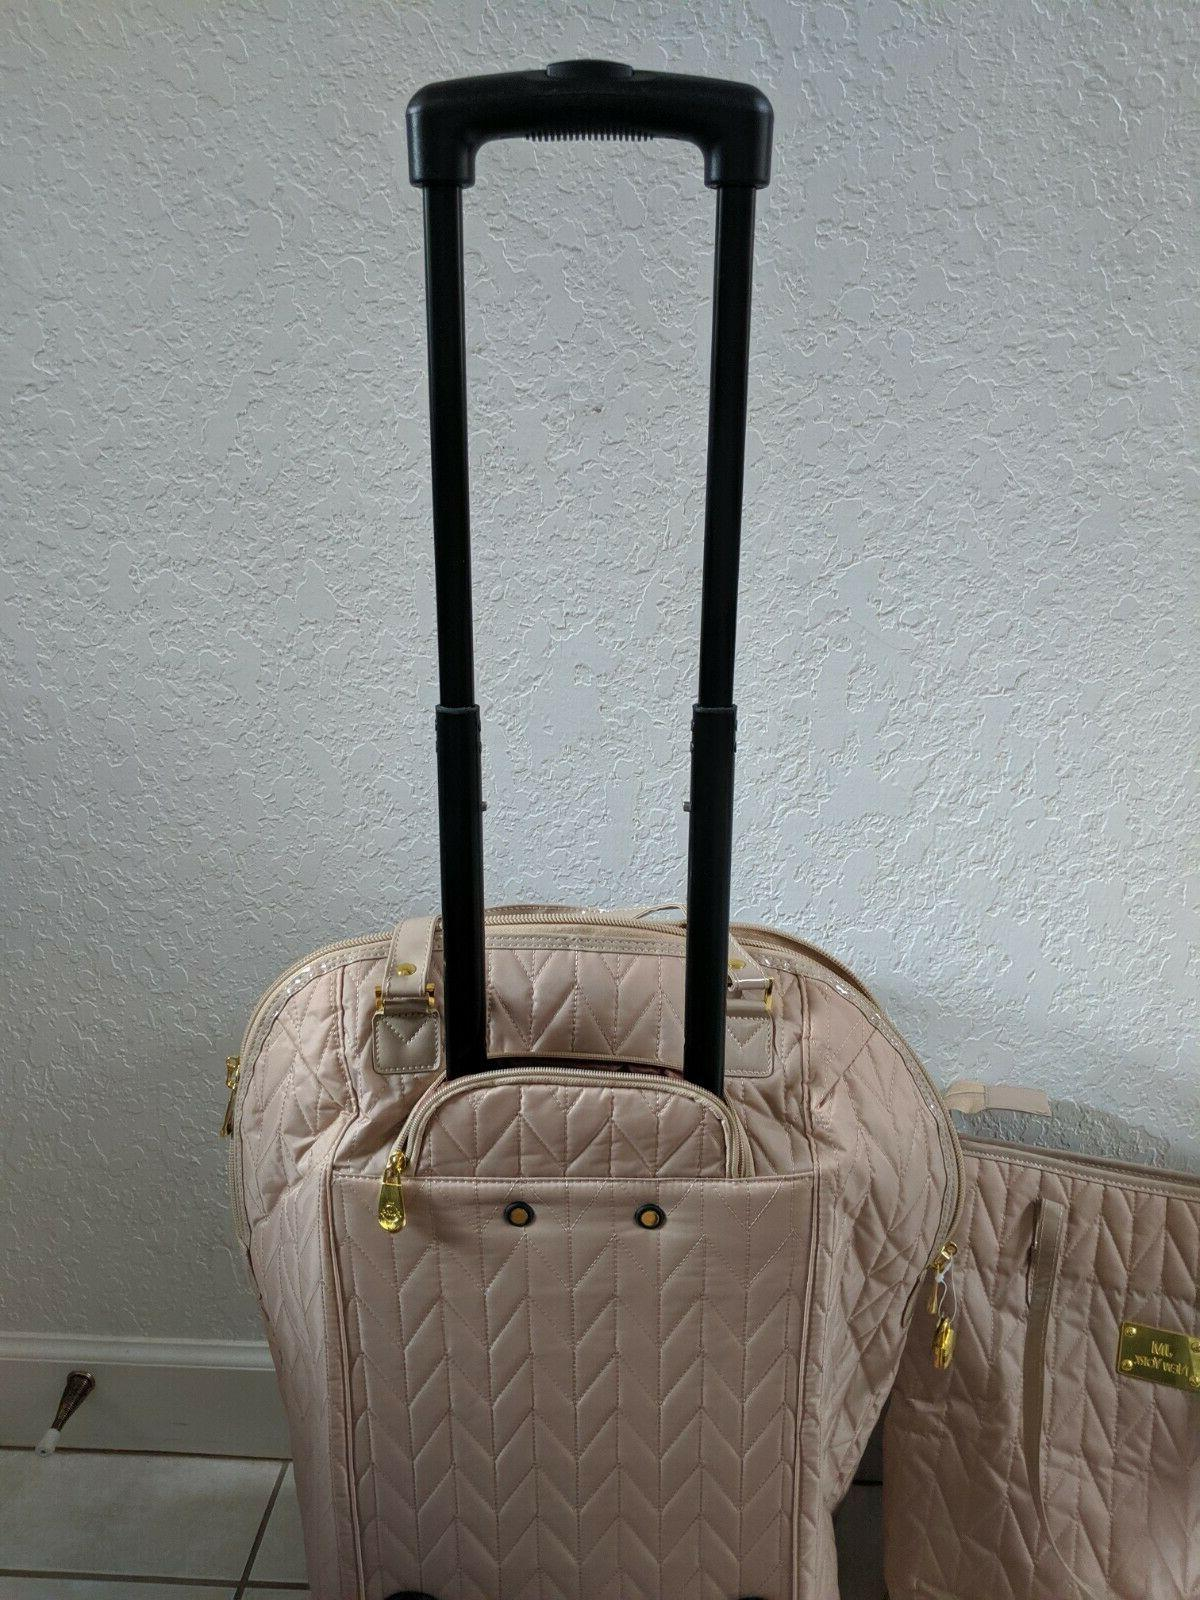 JOY MANGANO ALL TRAVEL EASE, PIECE SET, CREAMY LUGGAGE